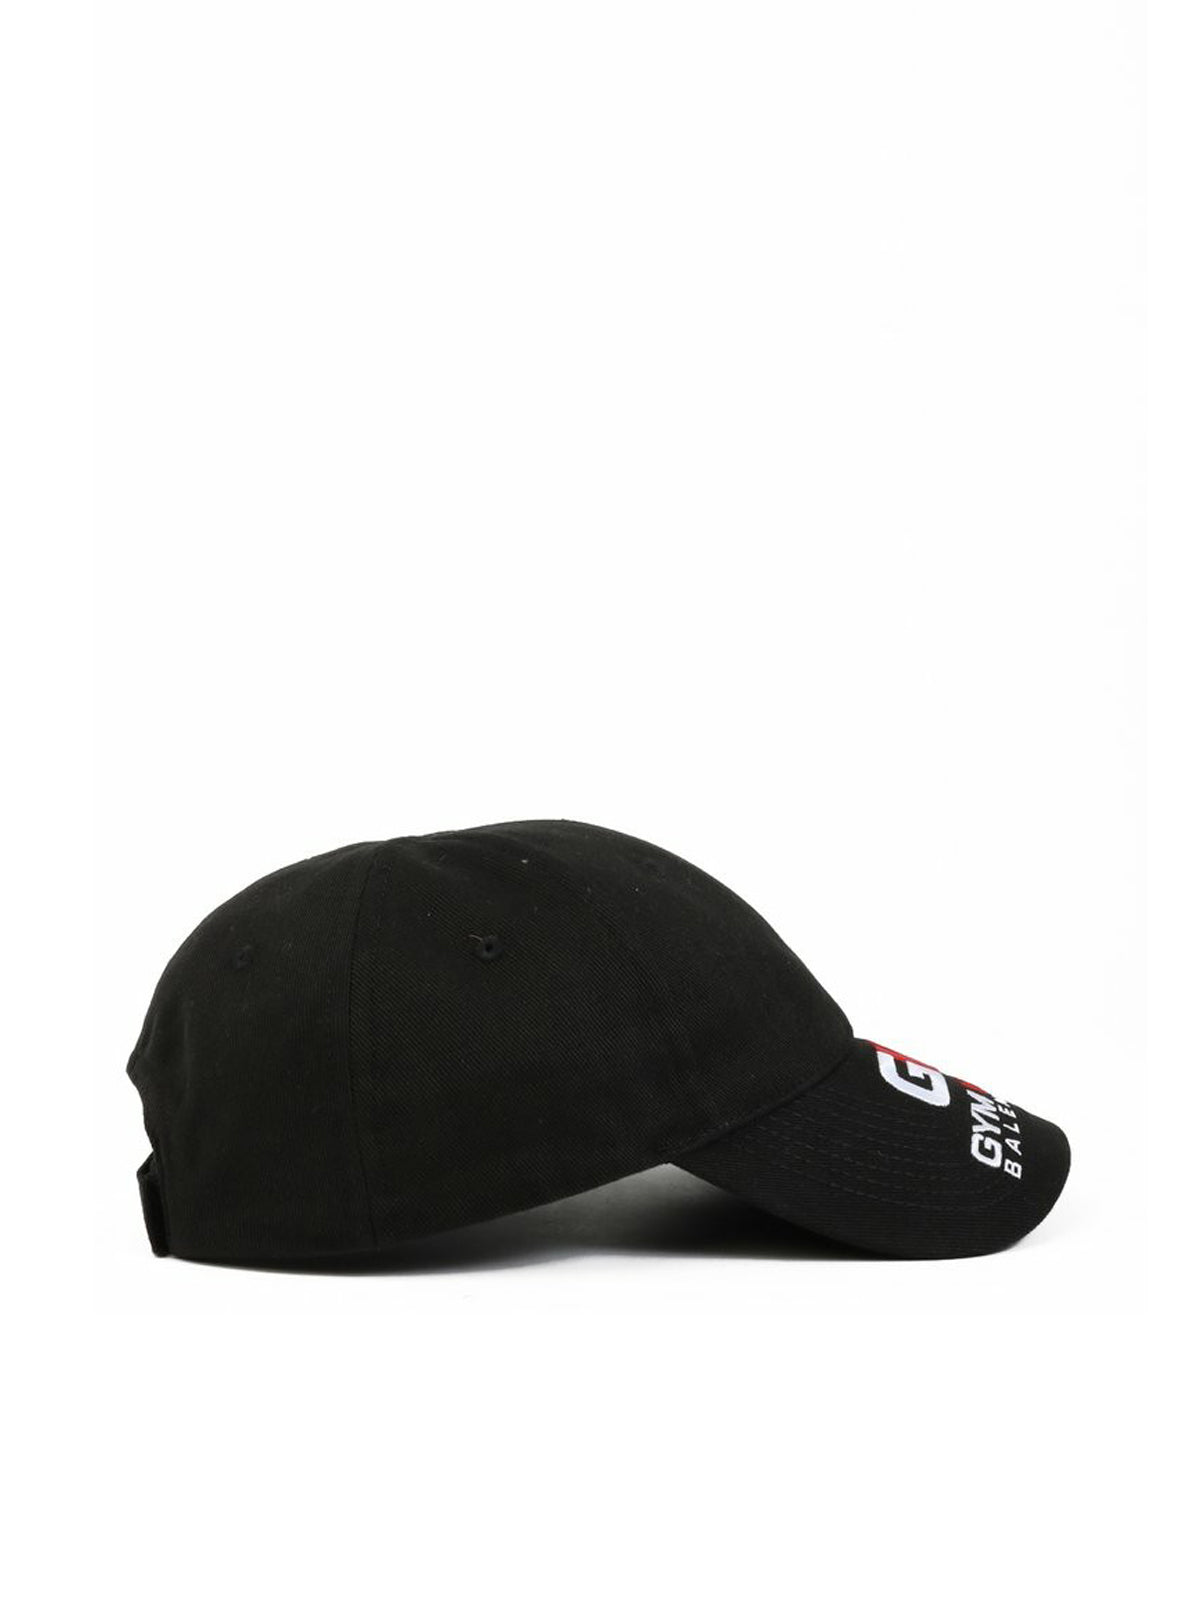 Gym Wear baseball cap